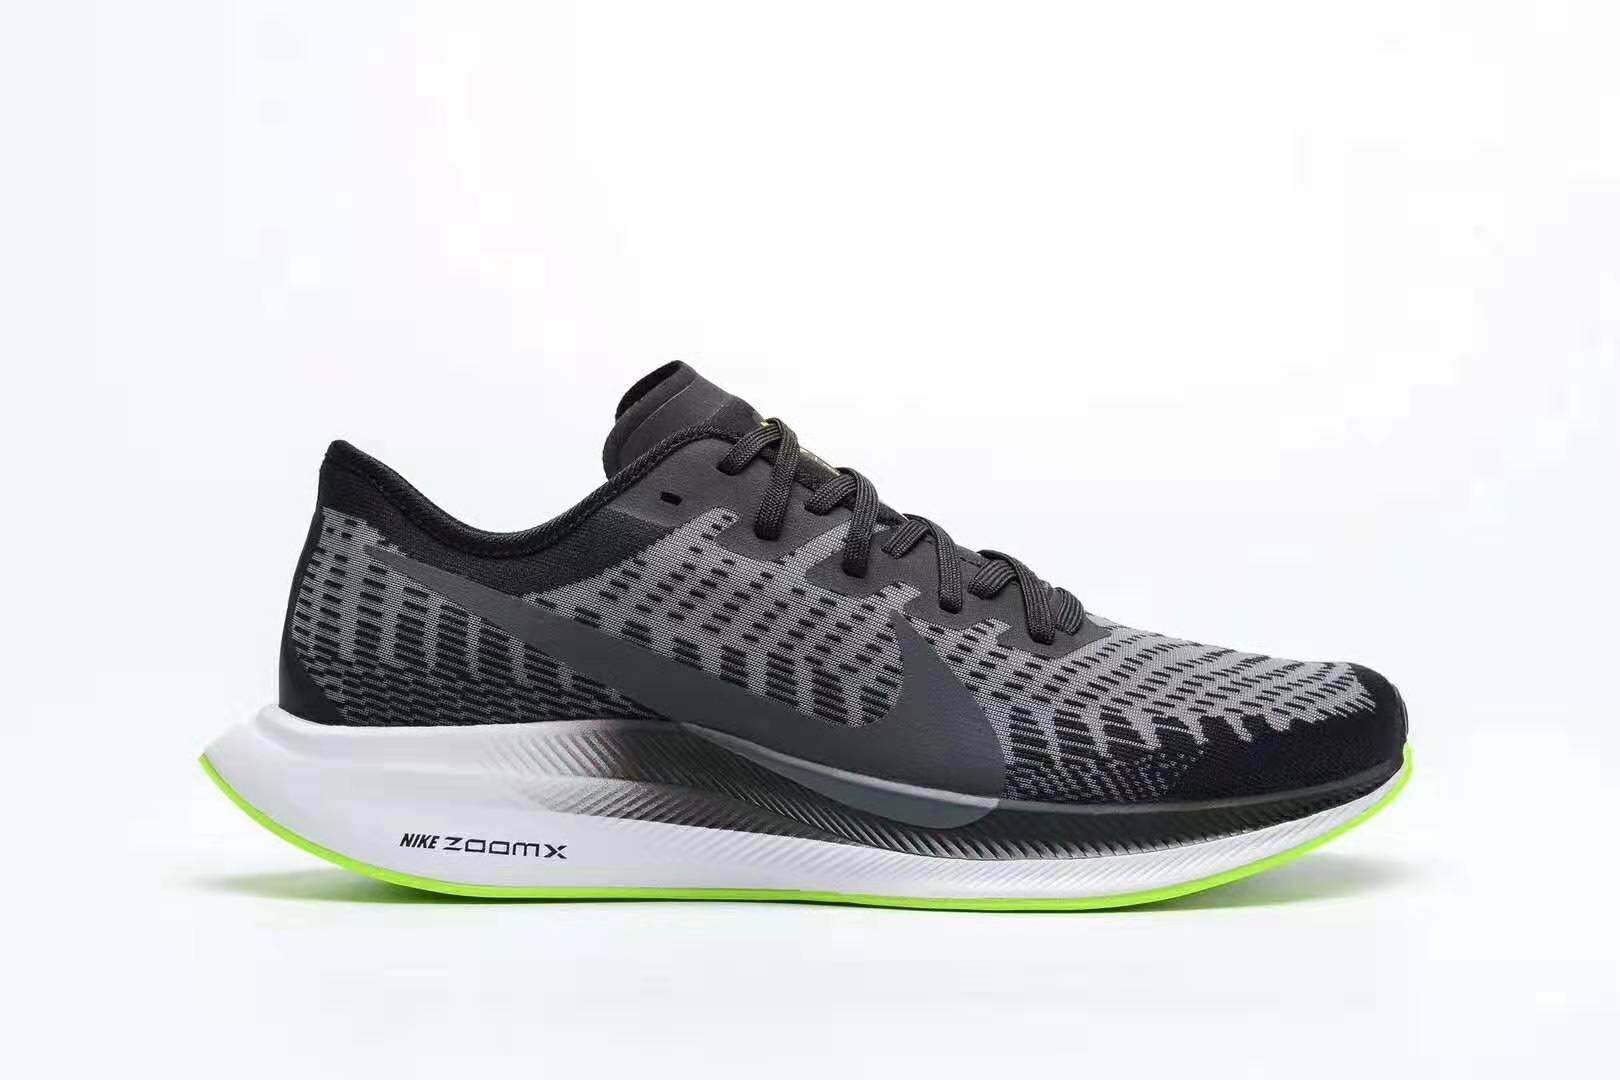 2019 summer full new original N ike authentic Zoom men and women casual breathable sneakers